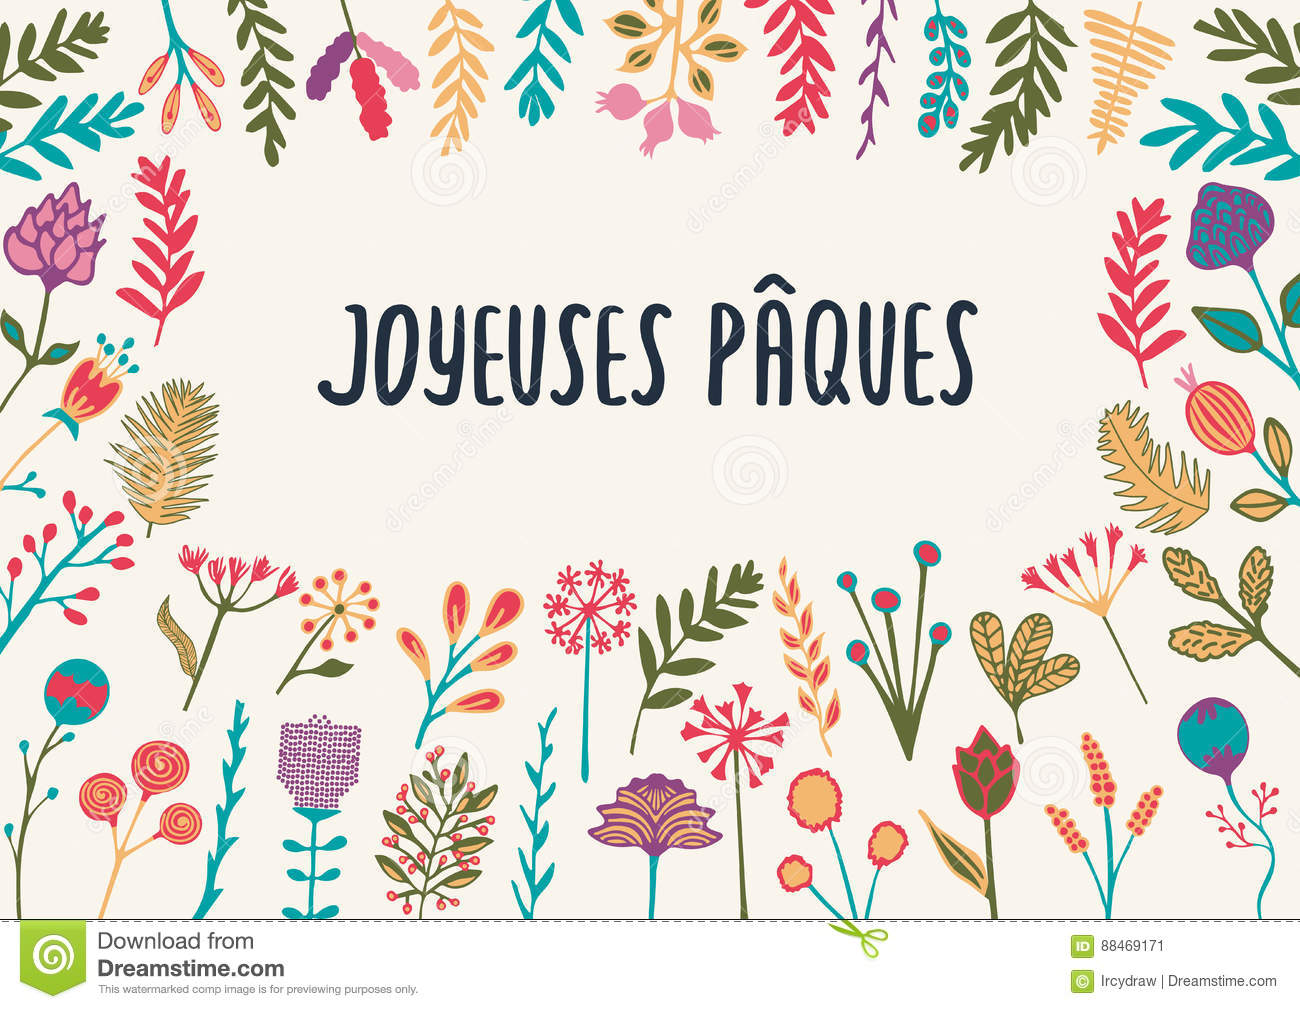 French easter greeting card joyeuses paques with hand drawn stock french easter greeting card joyeuses paques with hand drawn m4hsunfo